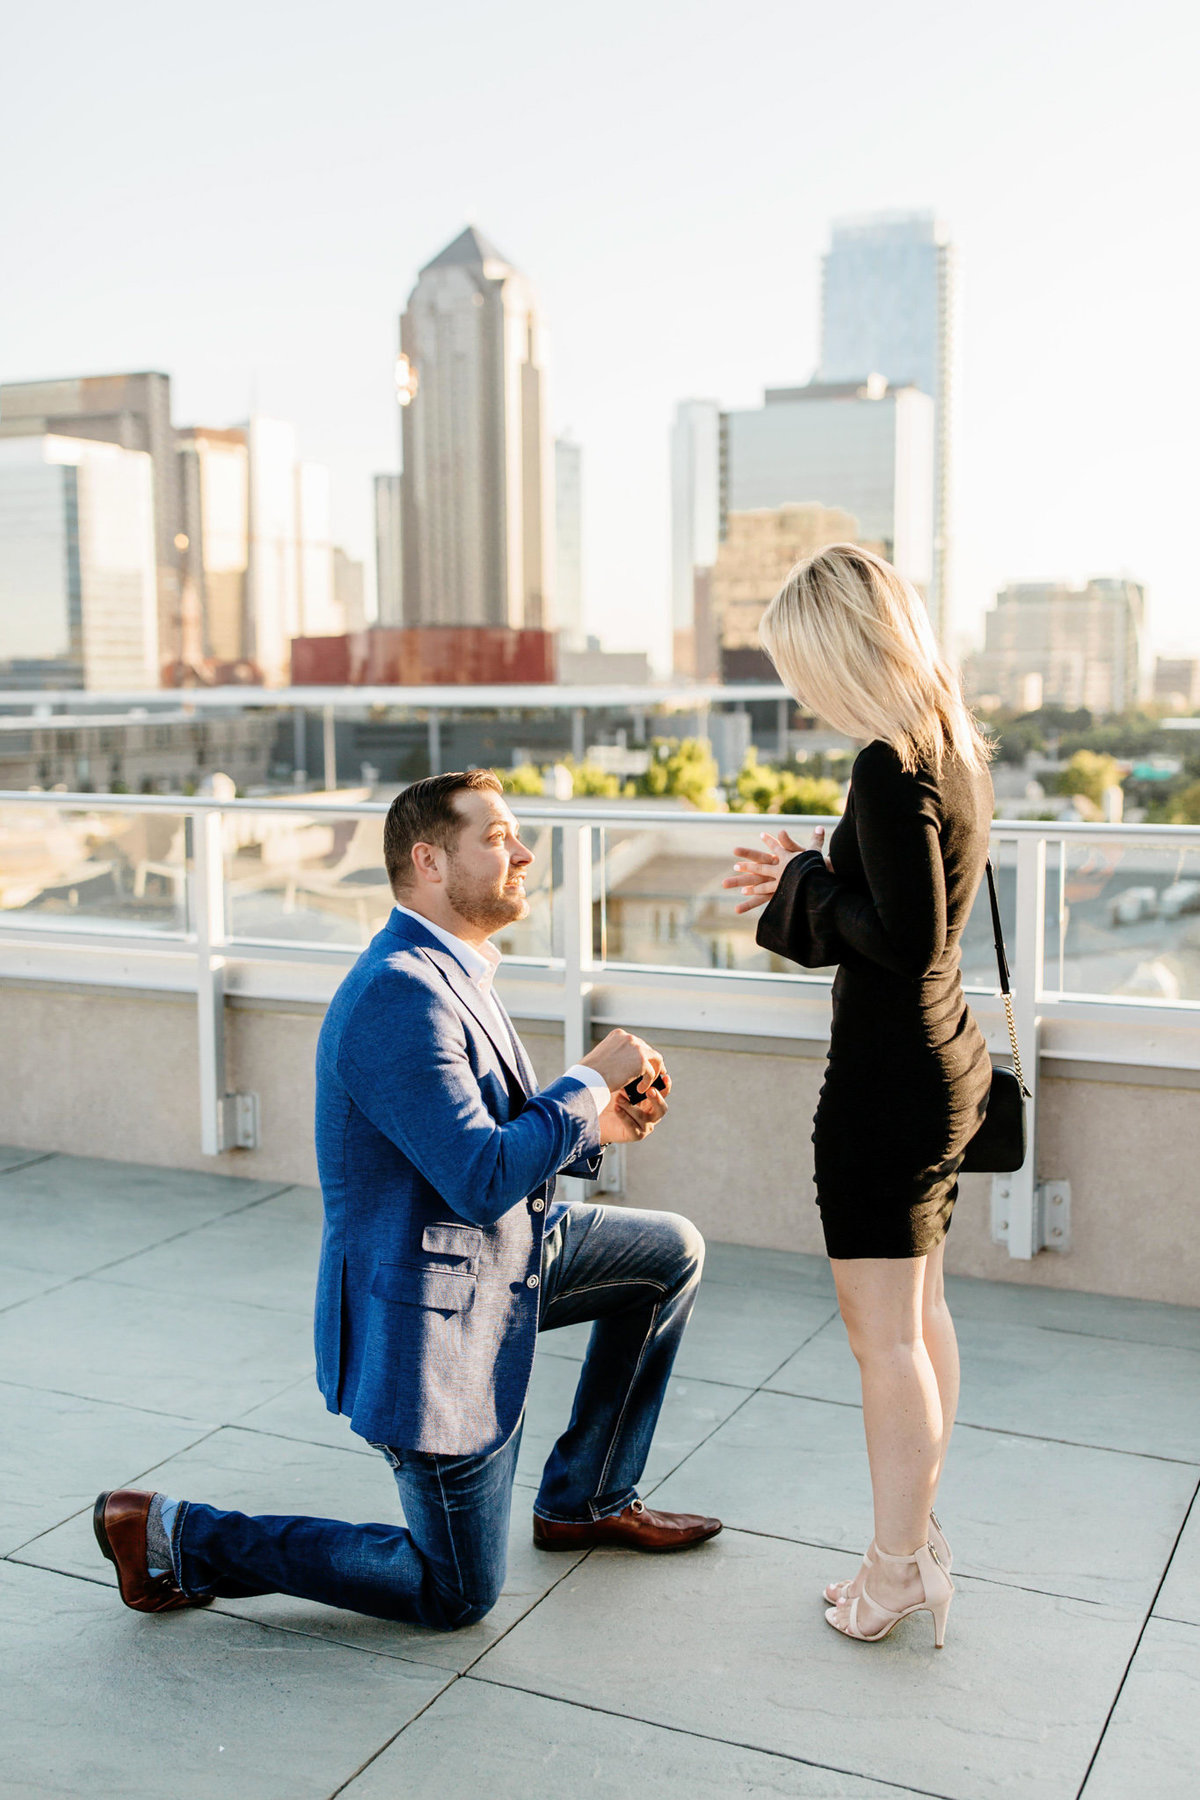 Eric & Megan - Downtown Dallas Rooftop Proposal & Engagement Session-30